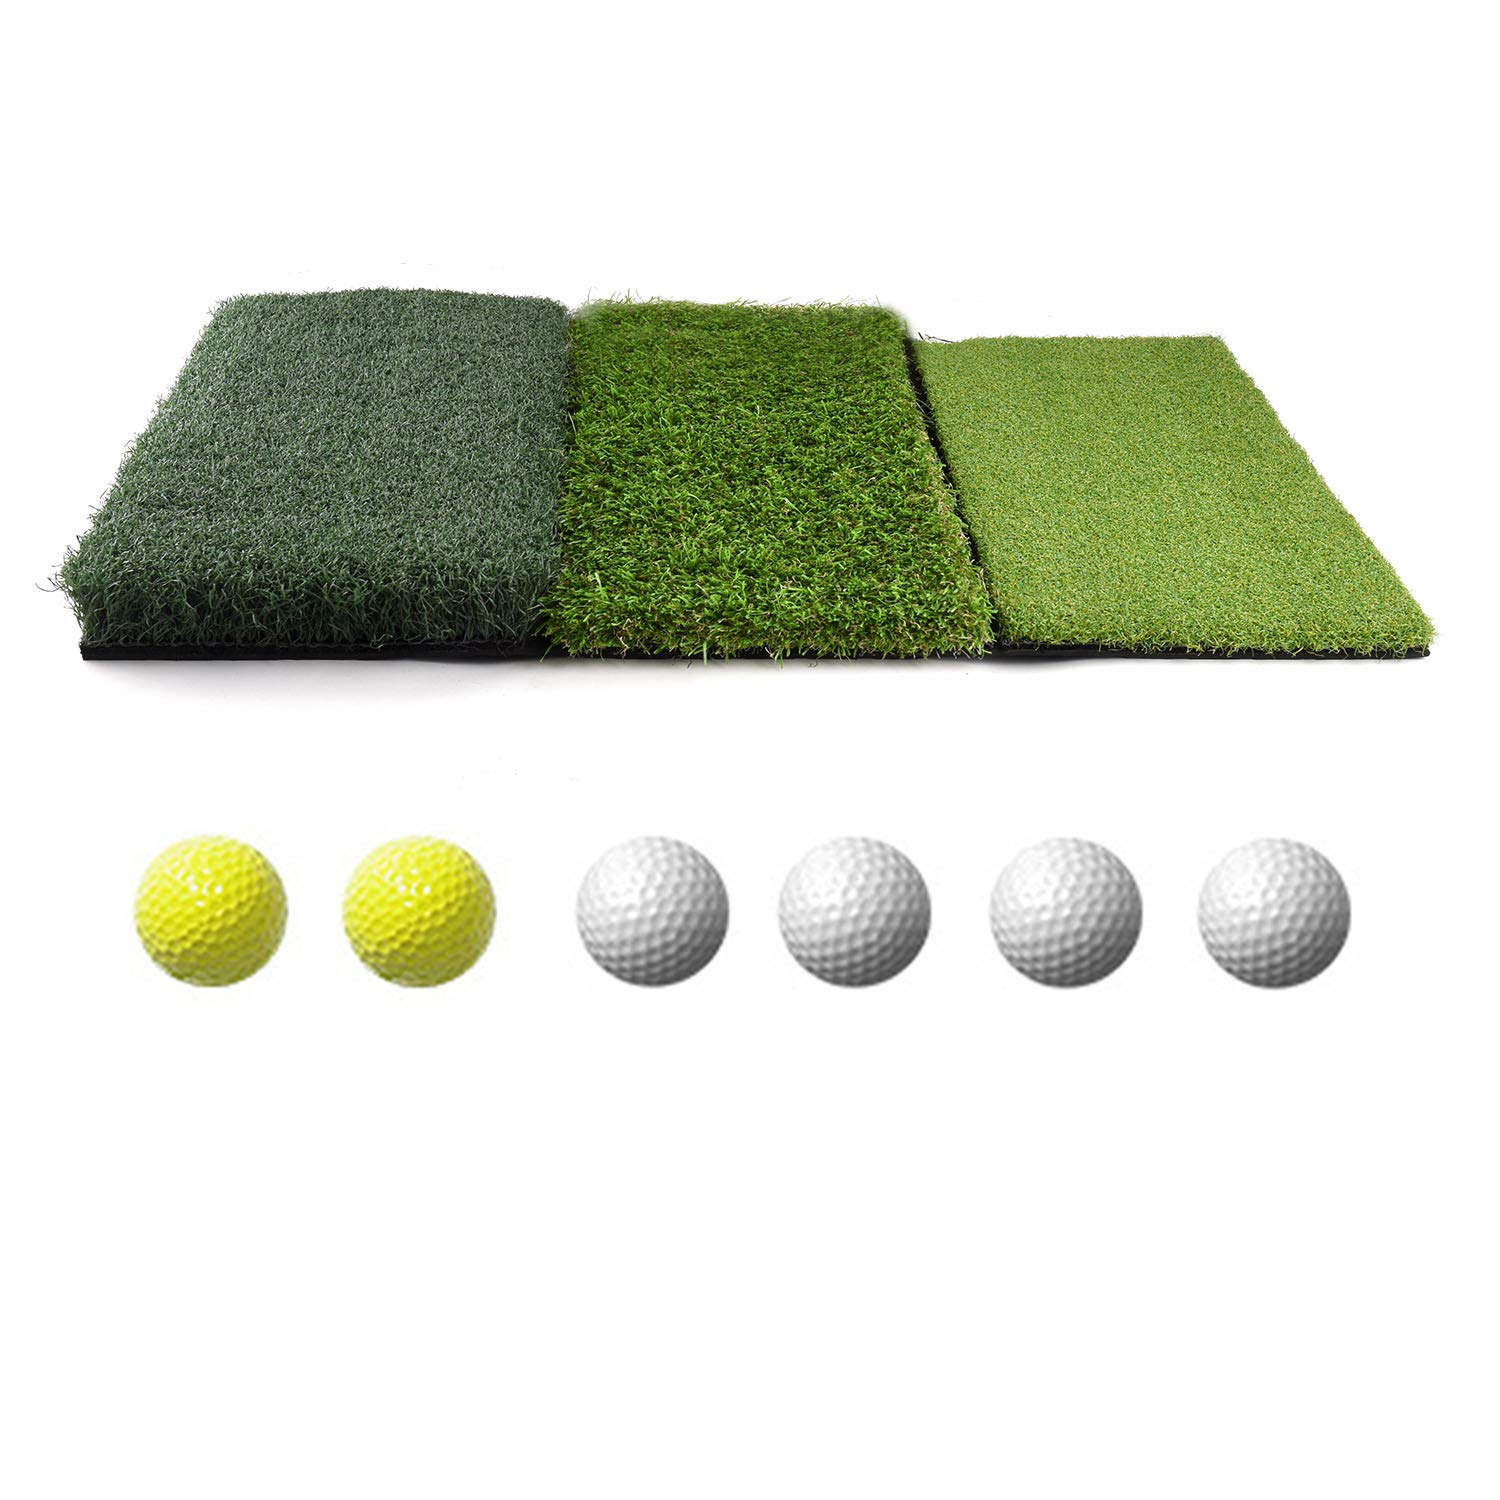 WhiteFang Golf 3-in-1 Turf Grass Mat Includes Tight Lie, Rough and Fairway for Driving, Chipping, and Putting Golf Practice and Training - 25x16in